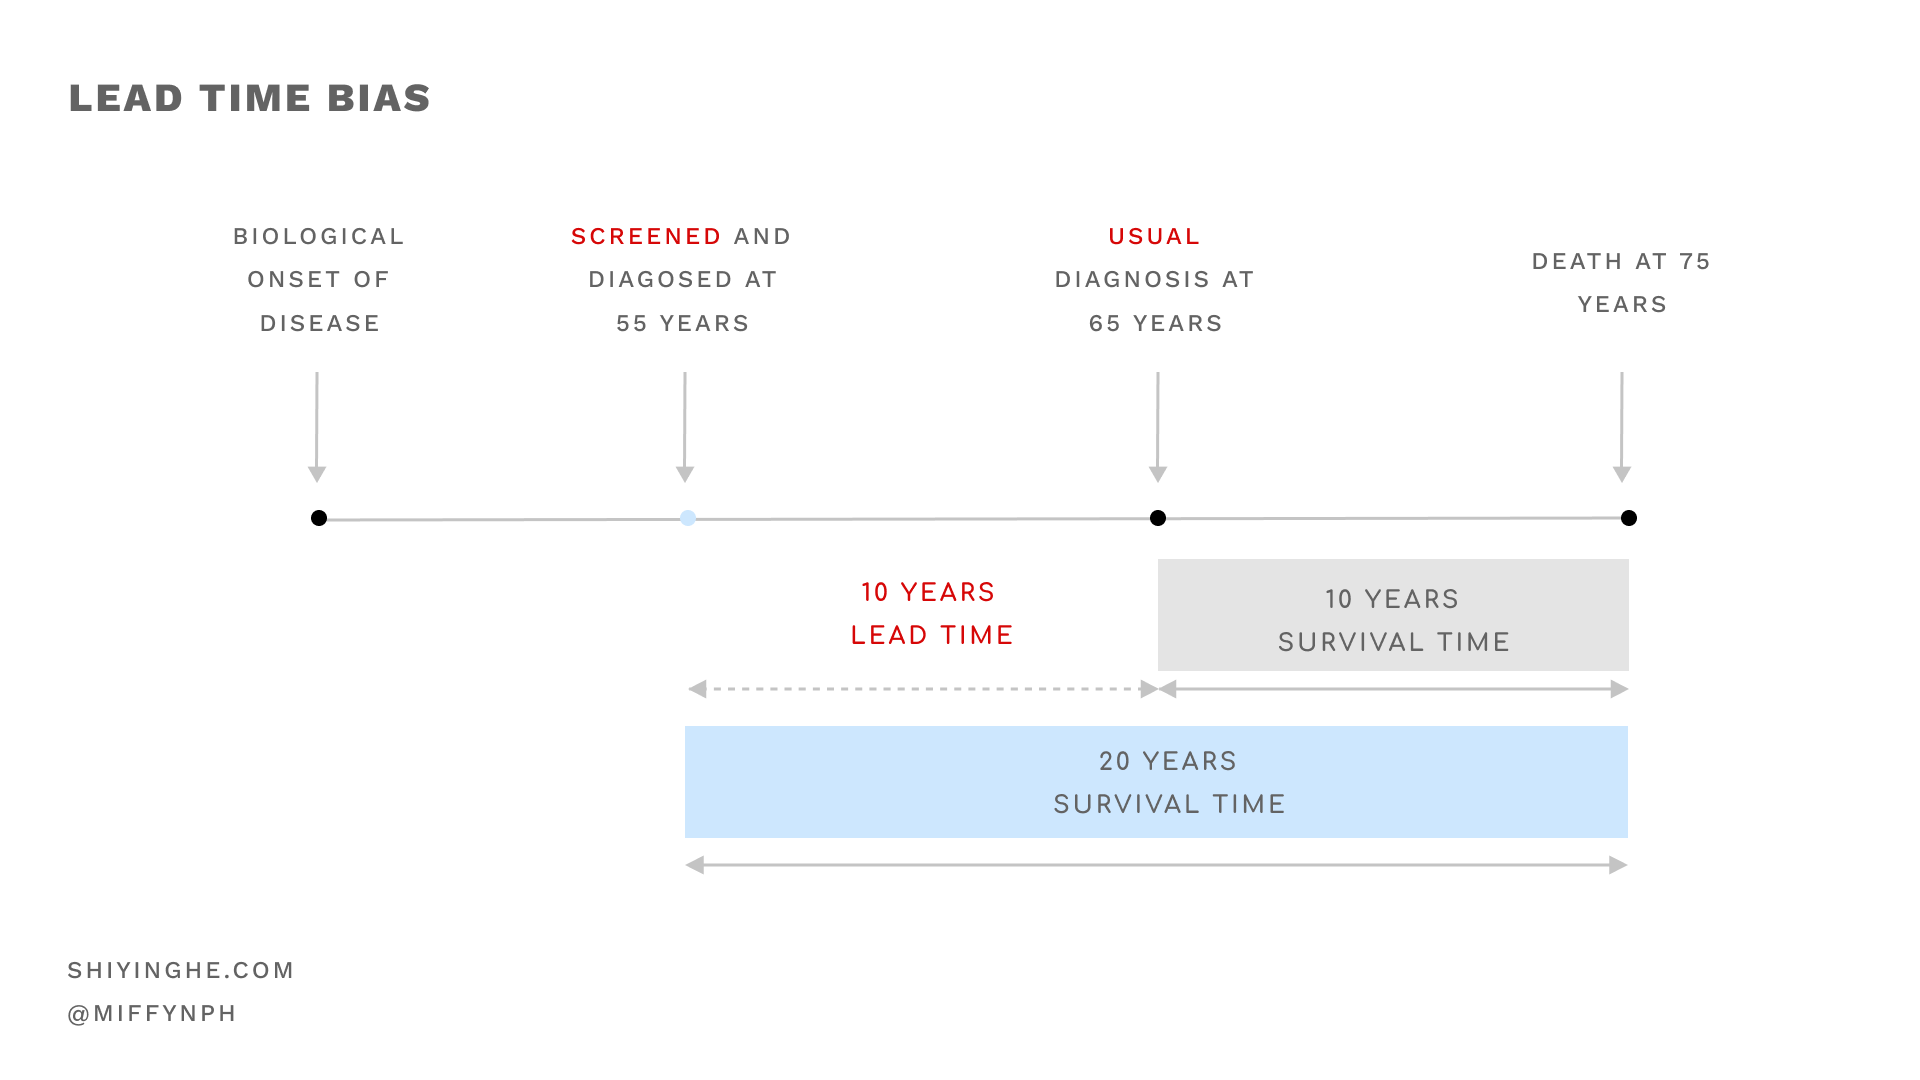 Lead time bias artificially increases the survival time of a patient that went through screening.